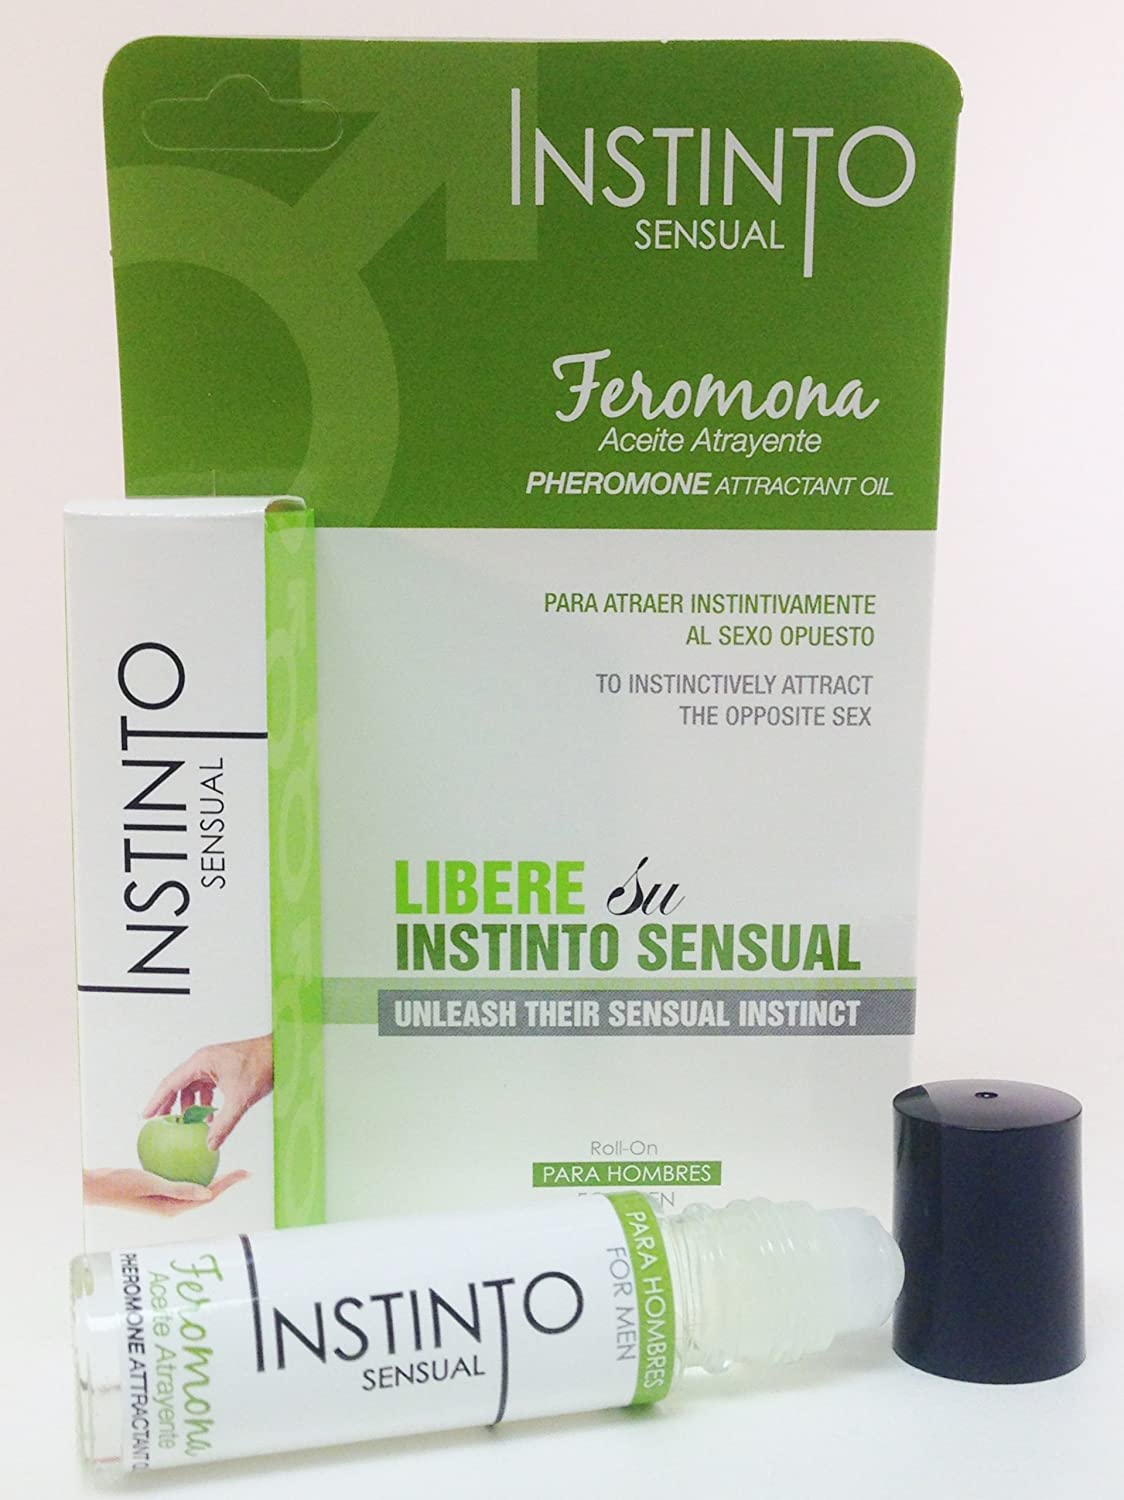 Amazon.com : Instinto Sensual Pheromones for Men-Feromonas Para Hombres : Personal Fragrances : Beauty